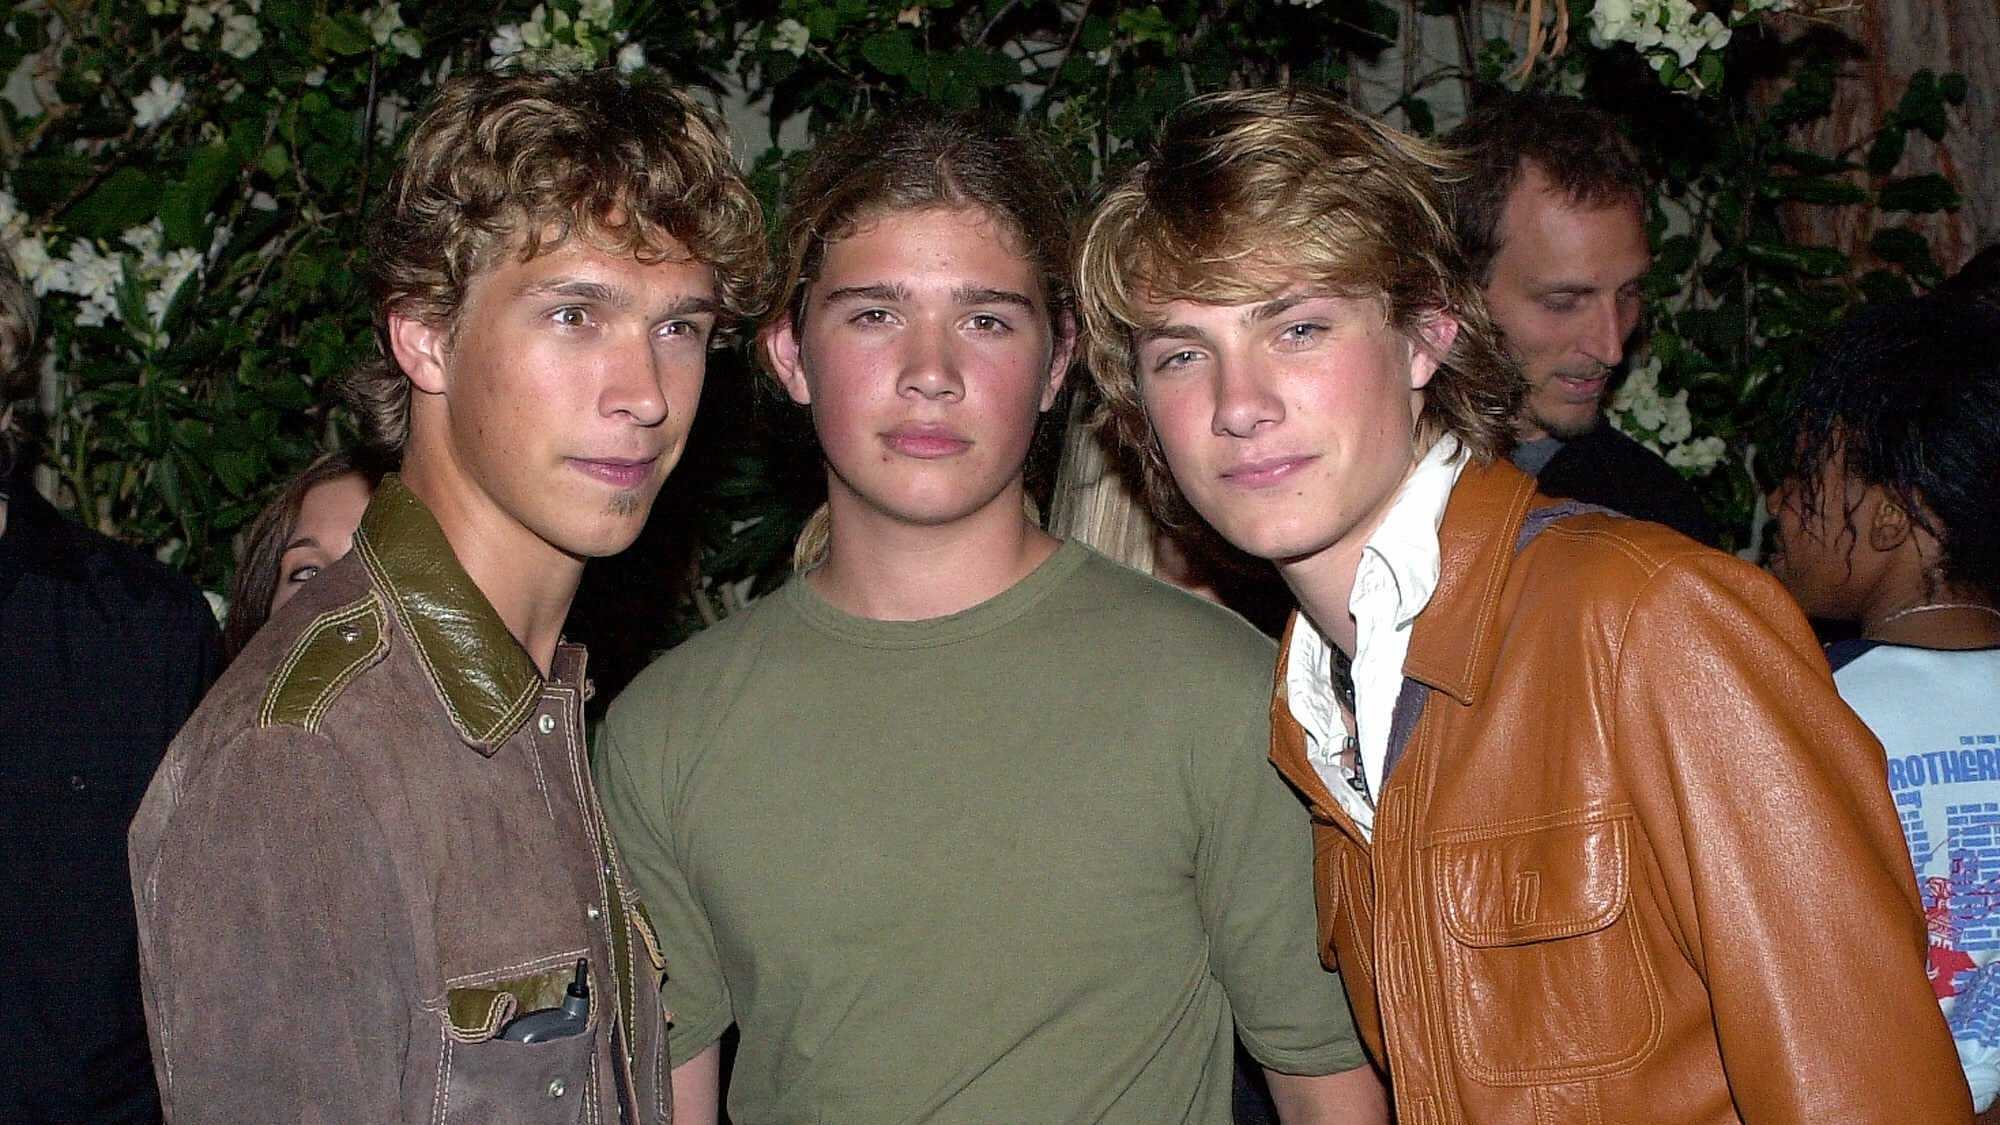 Members of the band Hanson, Isaac Hanson, left, and brothers Zachary and Taylor pose at a party in the Hollywood area of Los Angeles after hosting the MTV Movie Awards, Saturday, June 2, 2001. (AP Photo/Mark J. Terrill)